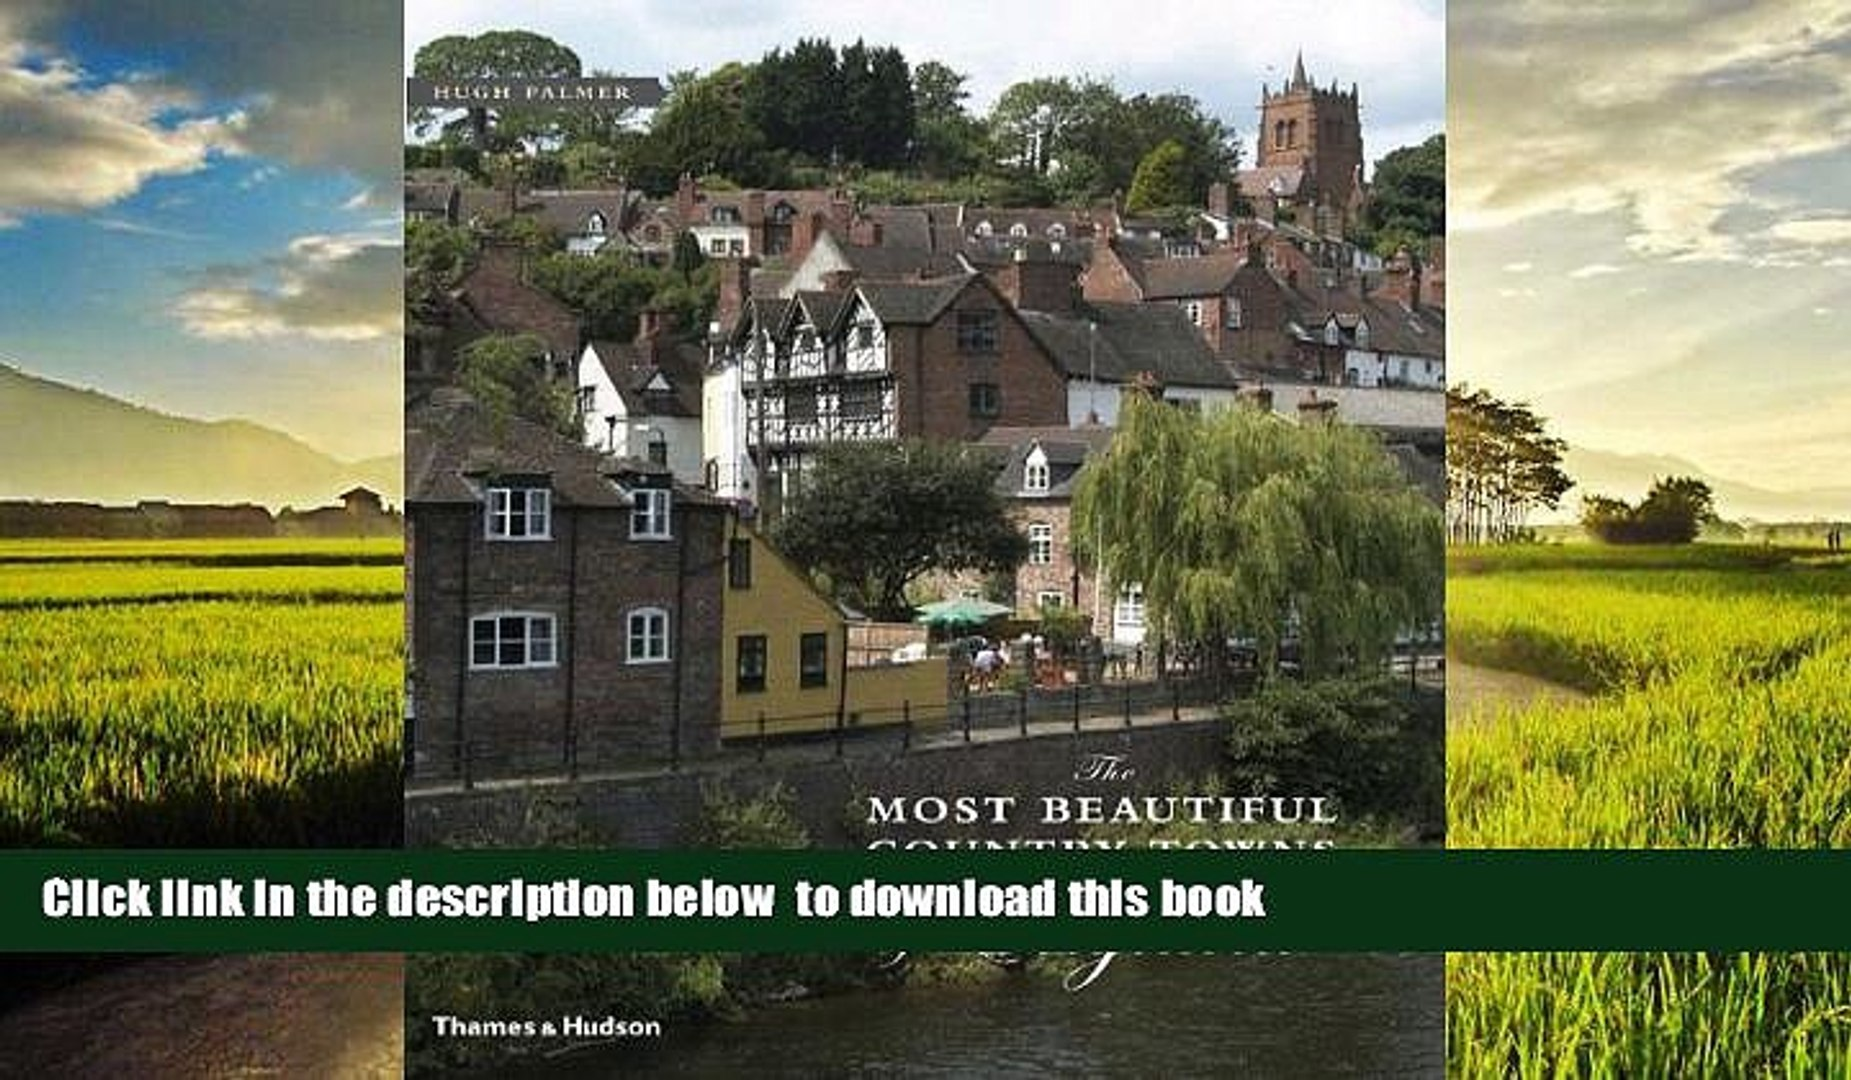 liberty books  The Most Beautiful Country Towns of England (Most Beautiful Villages Series) BOOOK